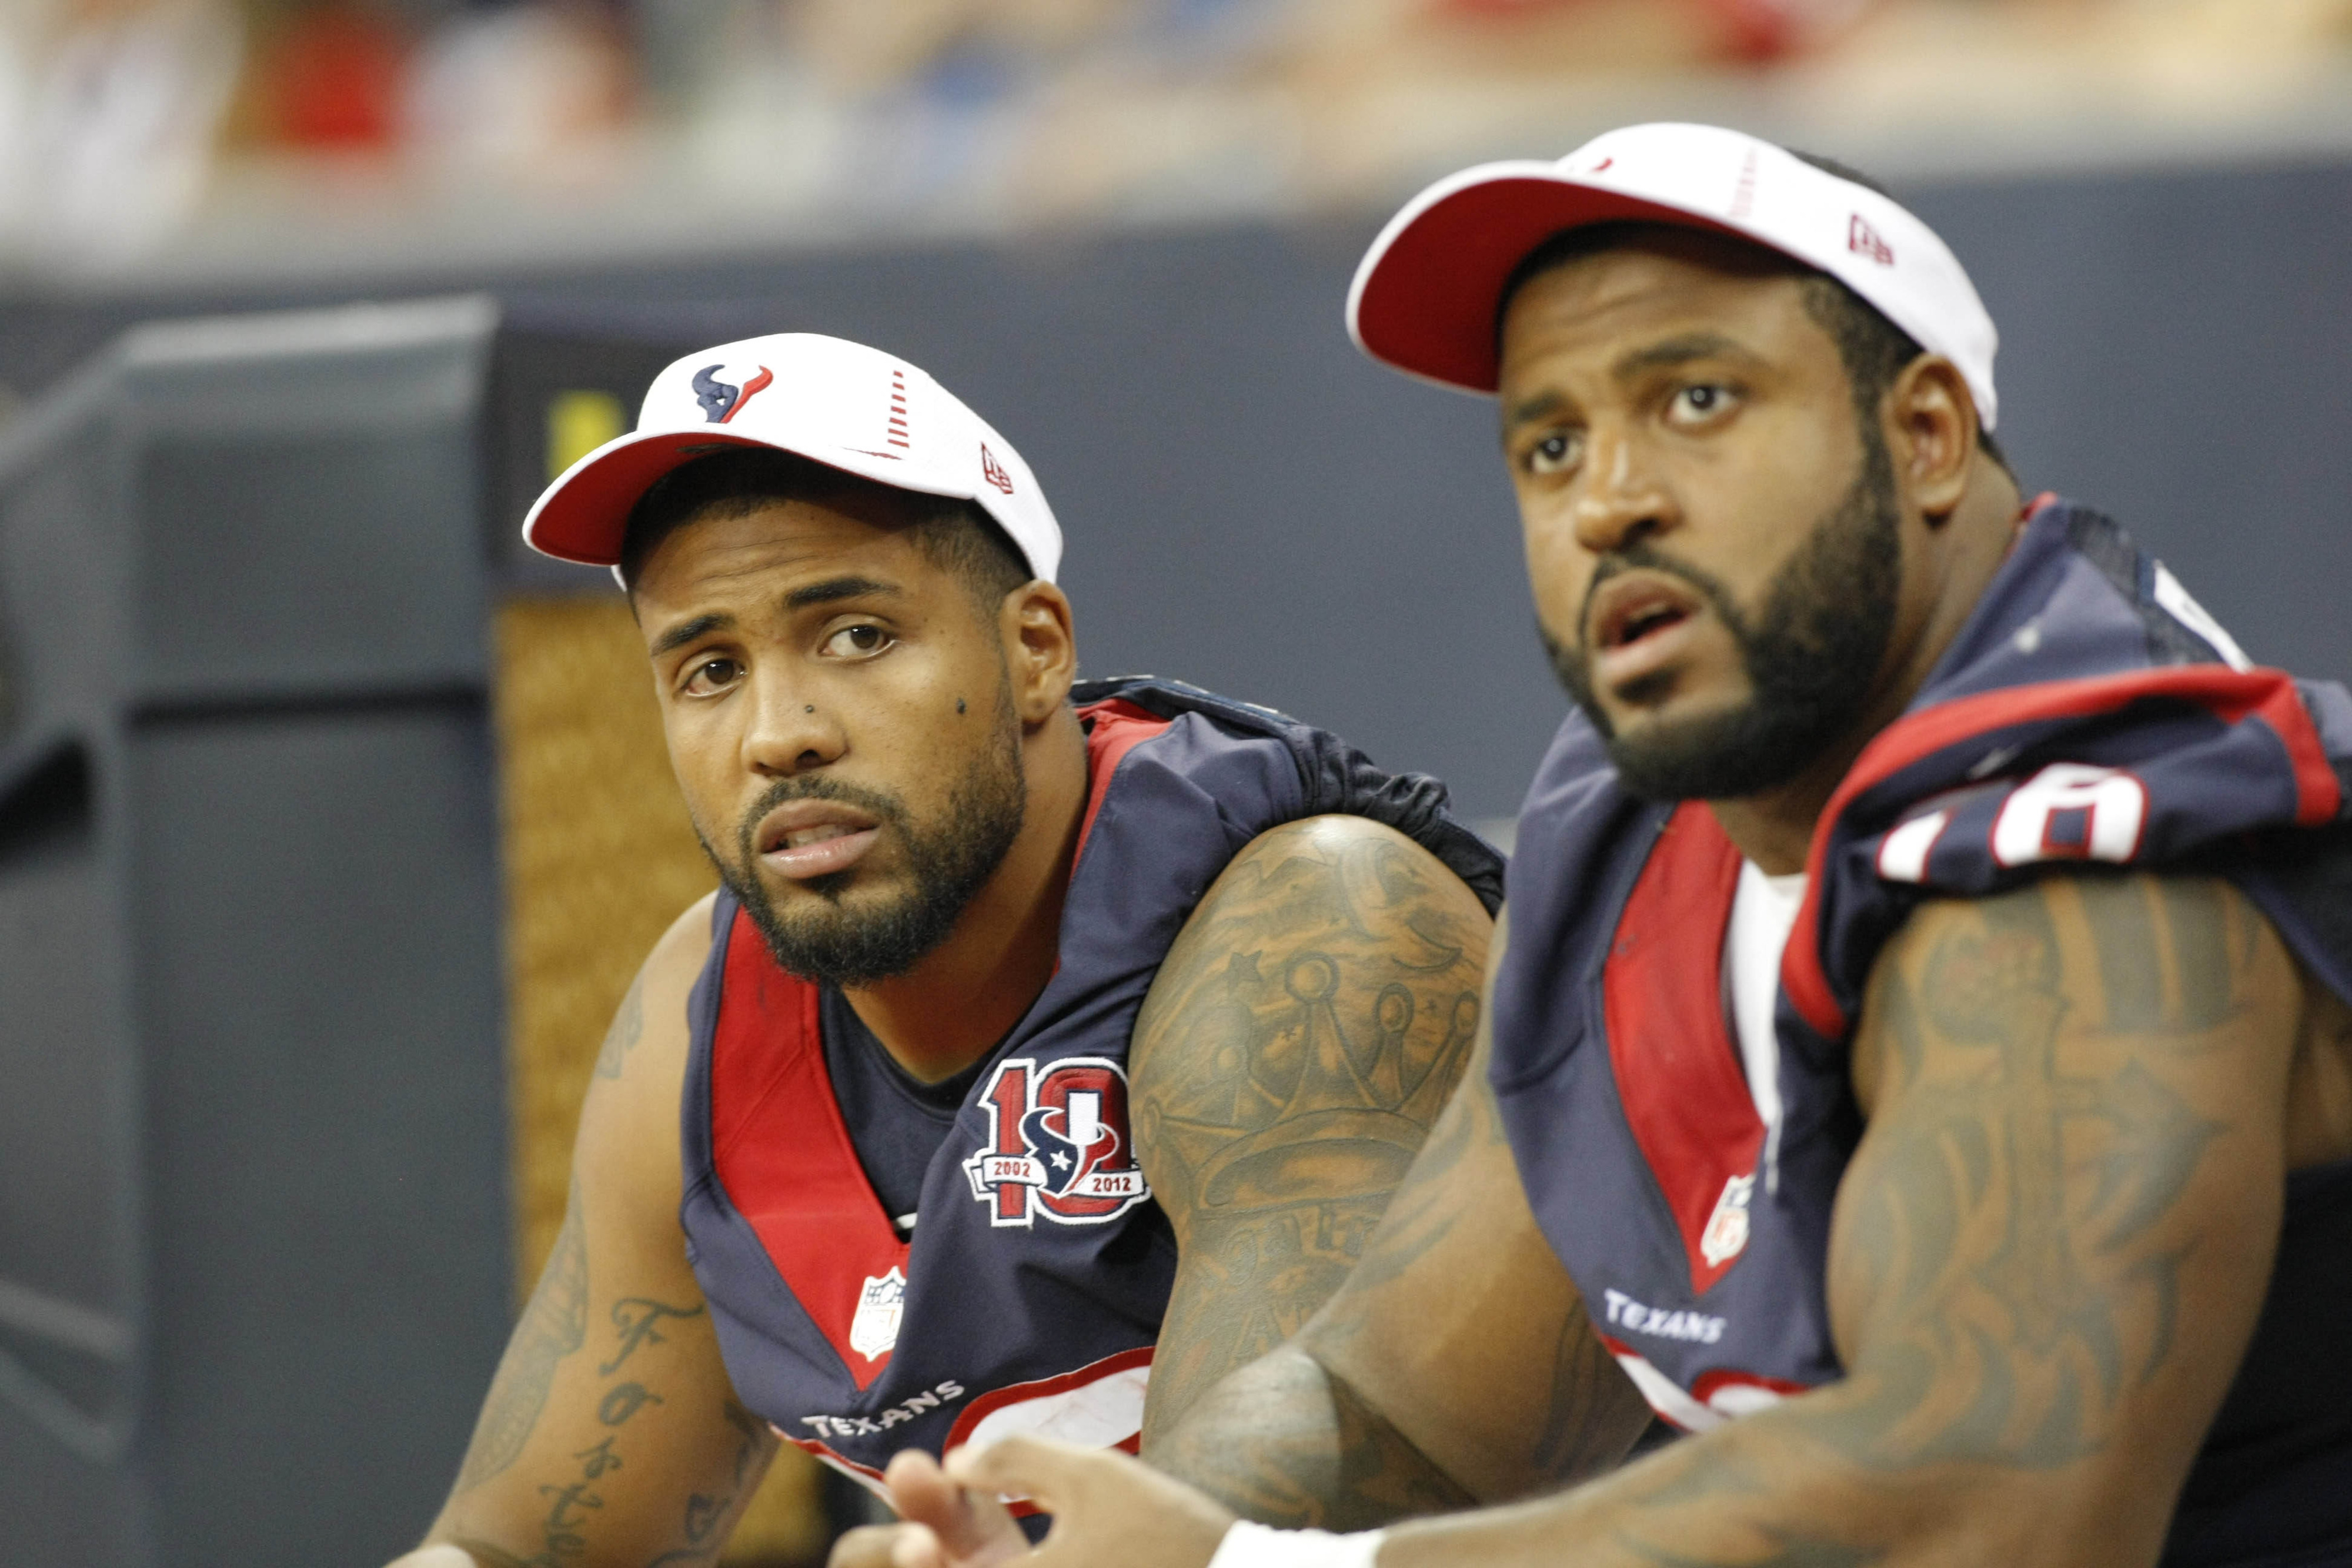 Brown and Foster doing their best impression of a Titans fan attempting a math problem